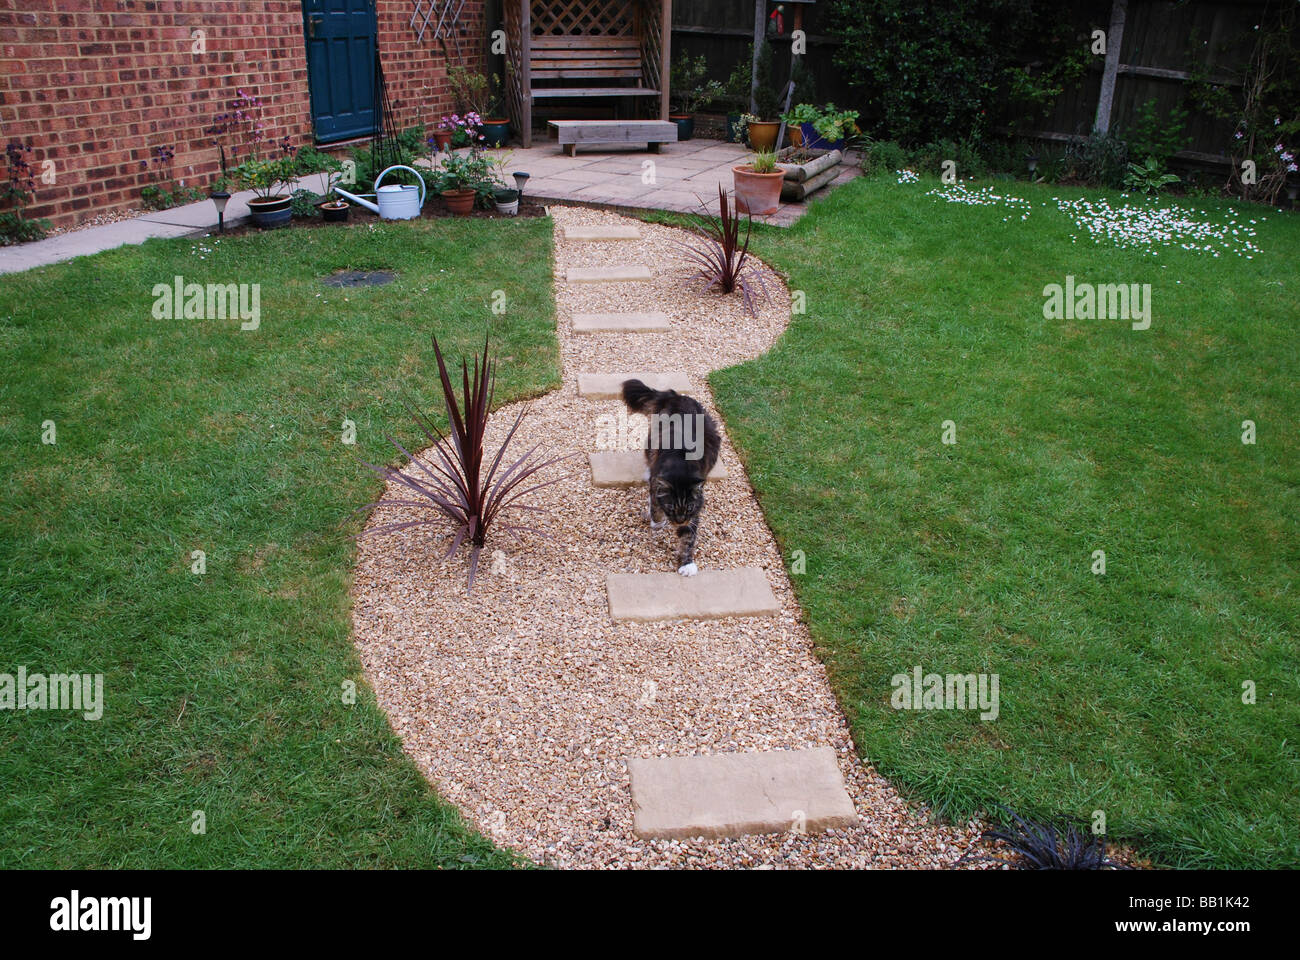 Back Garden Of Modern British House With Cat Walking Along A Newly Laid  Gravel Path